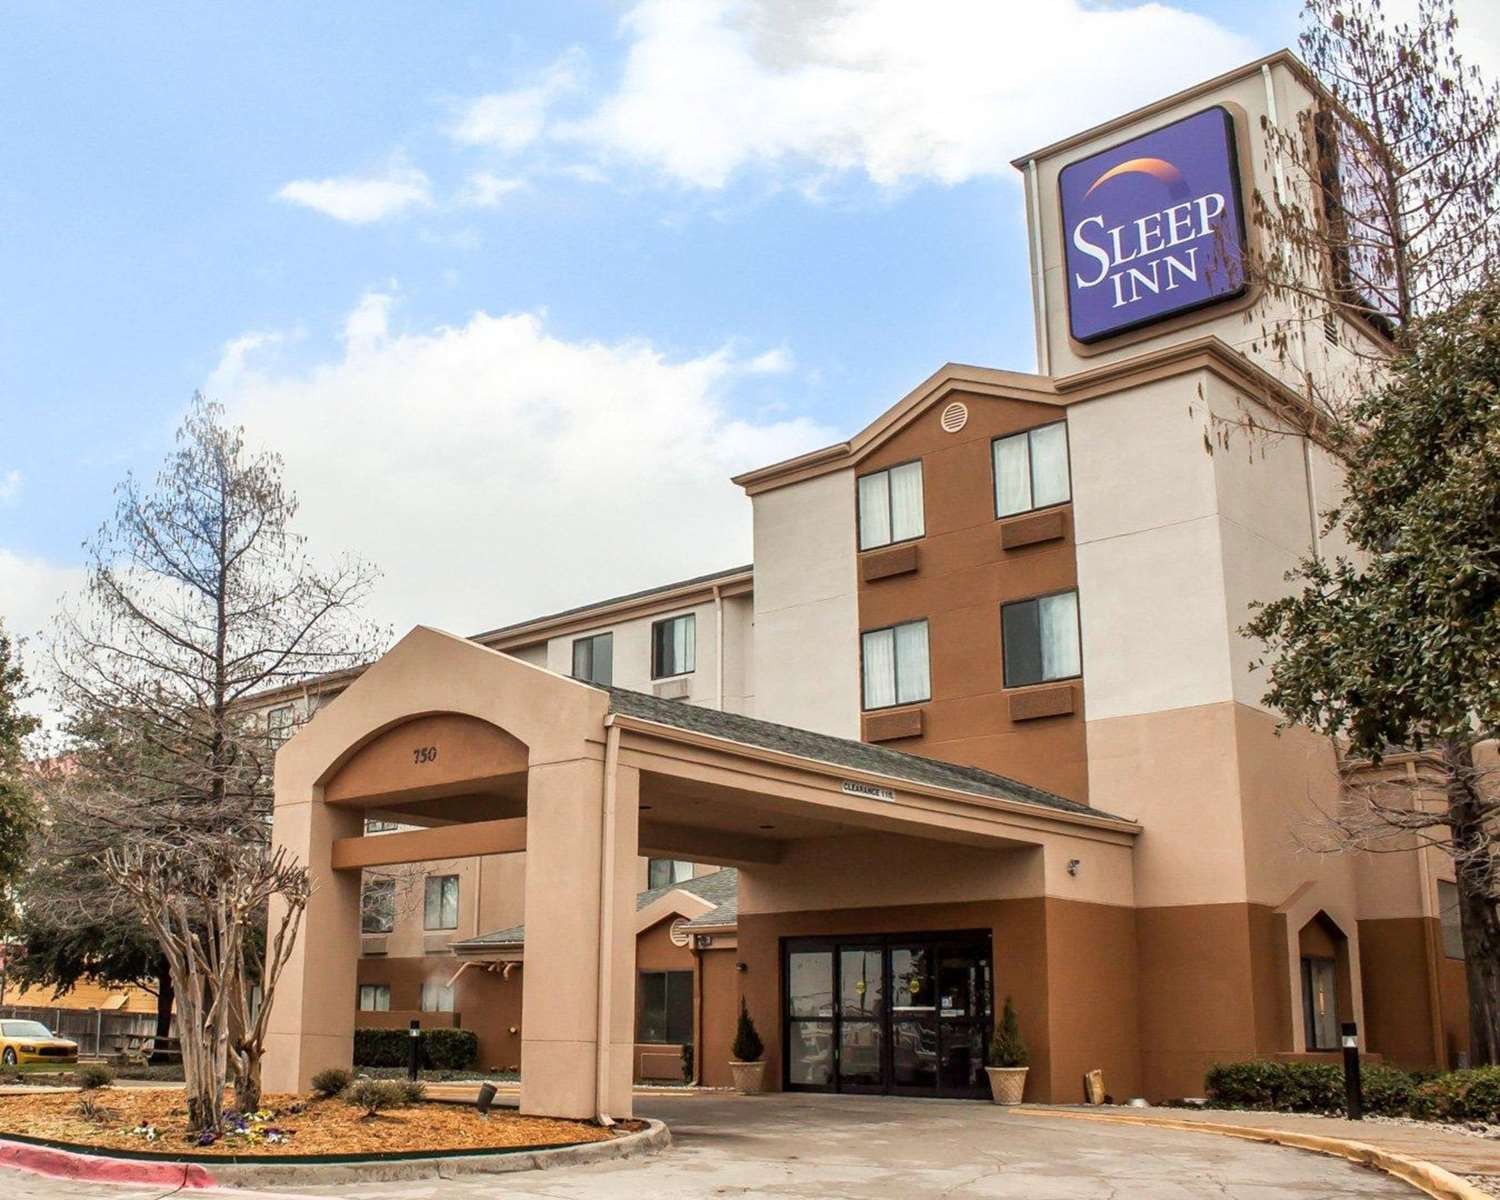 Sleep Inn Six Flags Arlington